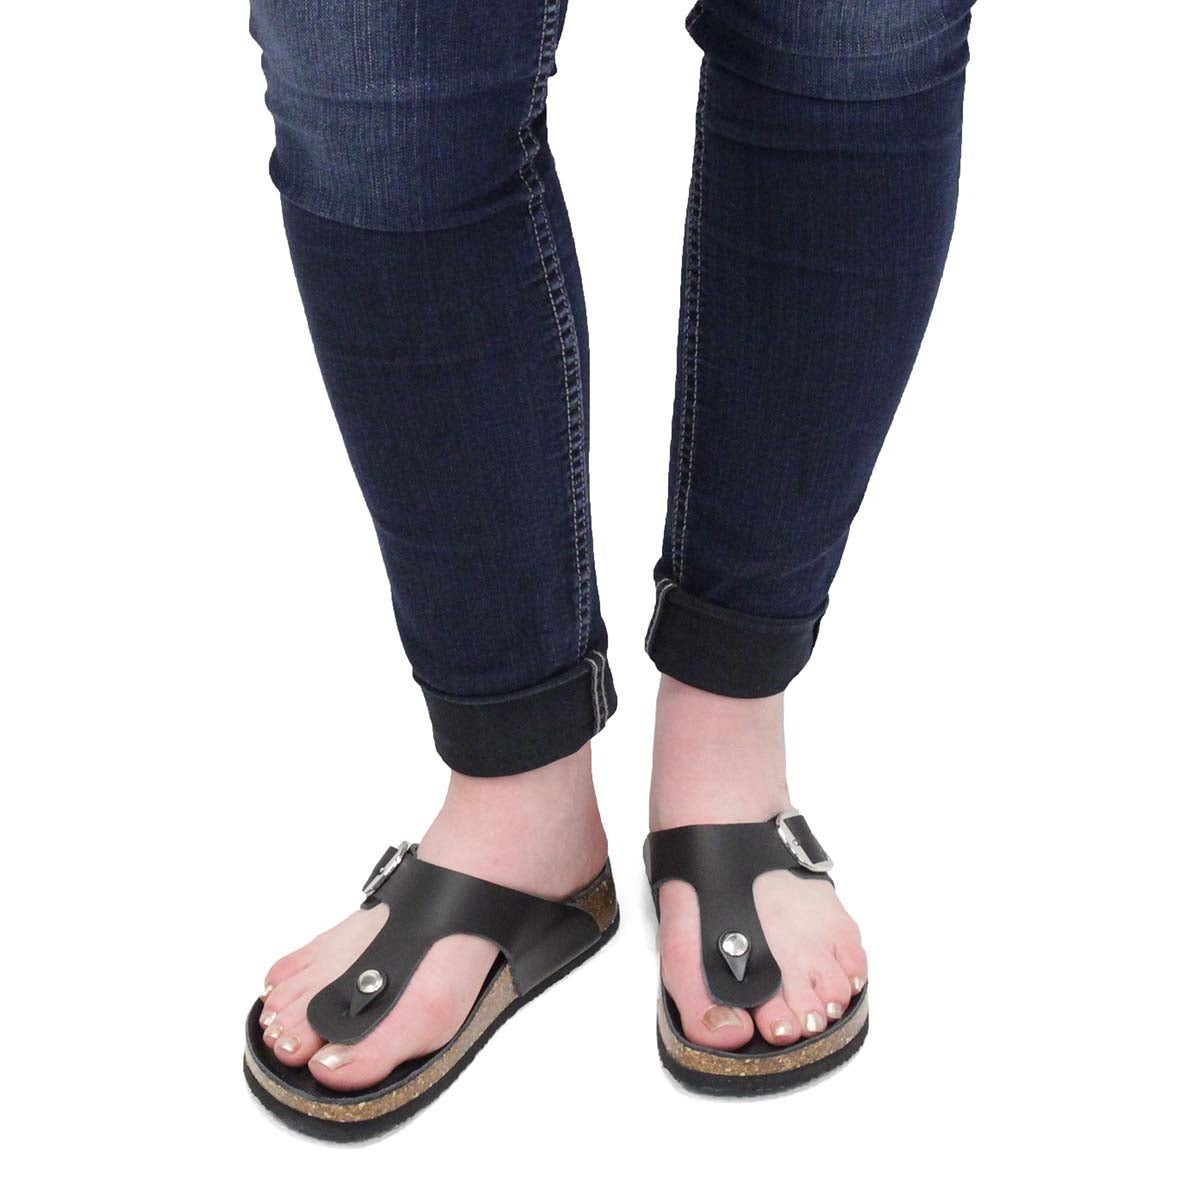 Lds Angy5 Smooth black thong sandal